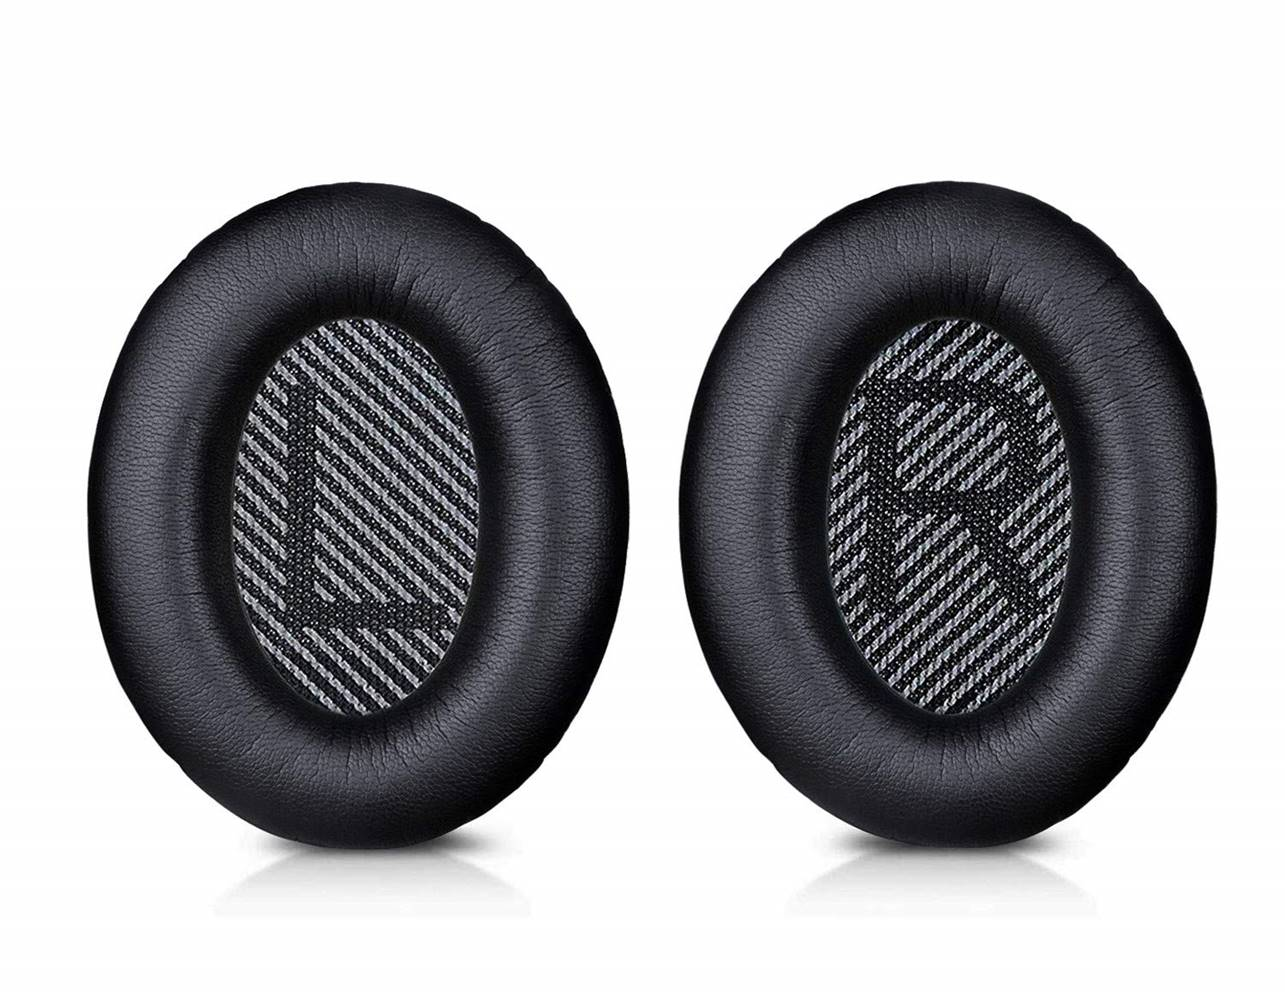 SoloWIT Replacement Ear Pads for Bose QC35